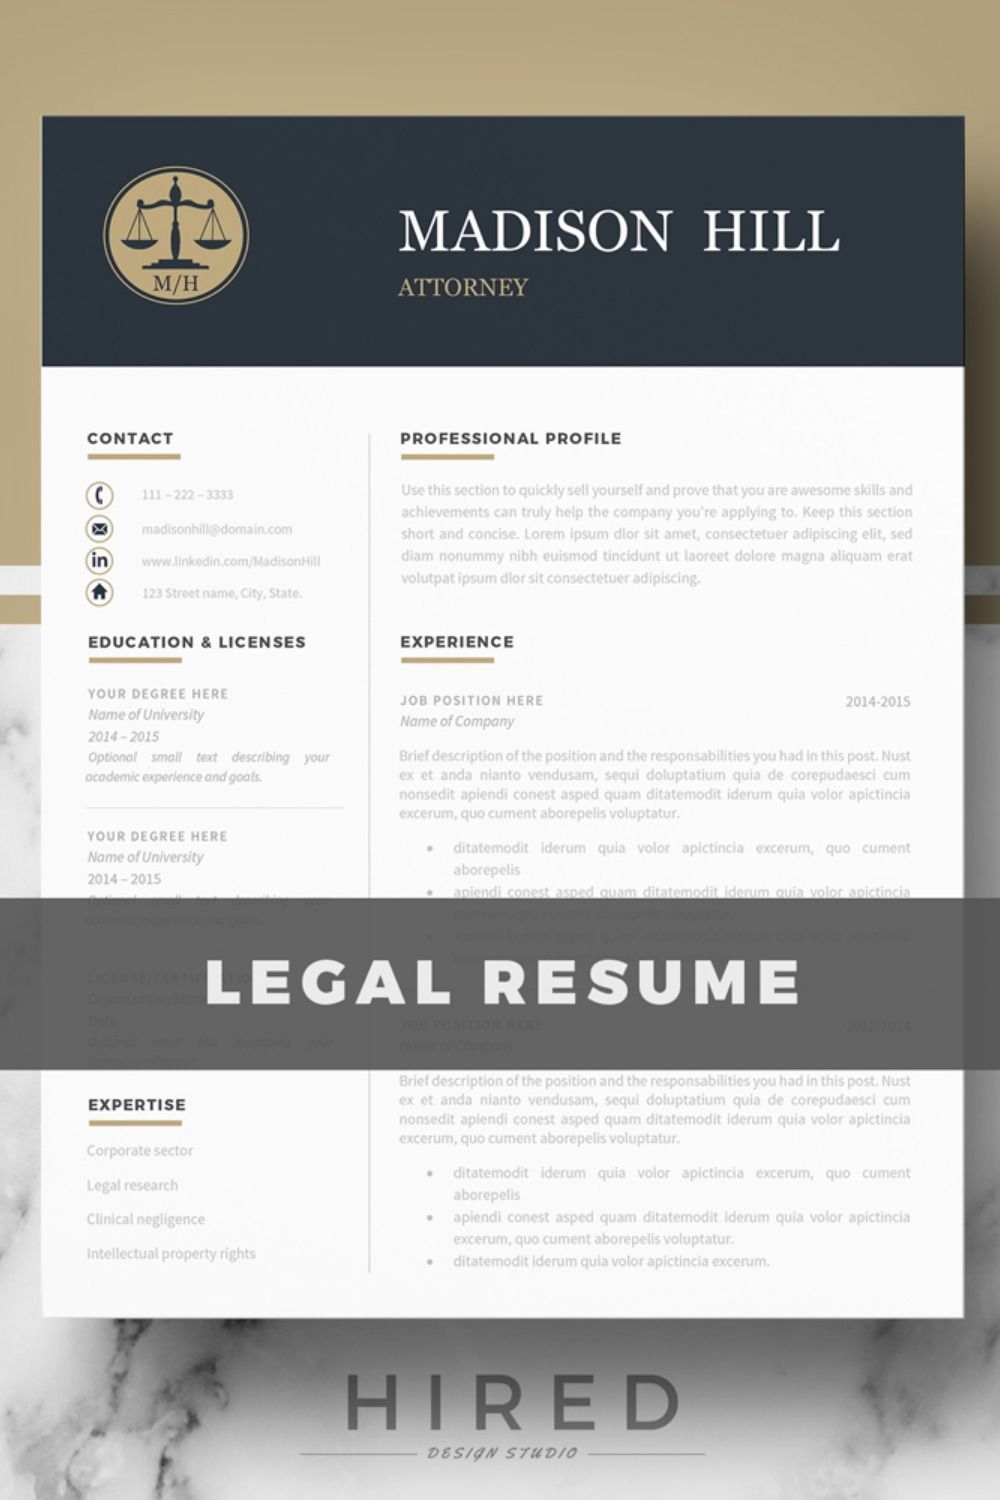 R15 MADISON HILL Attorney Resume template for Word or